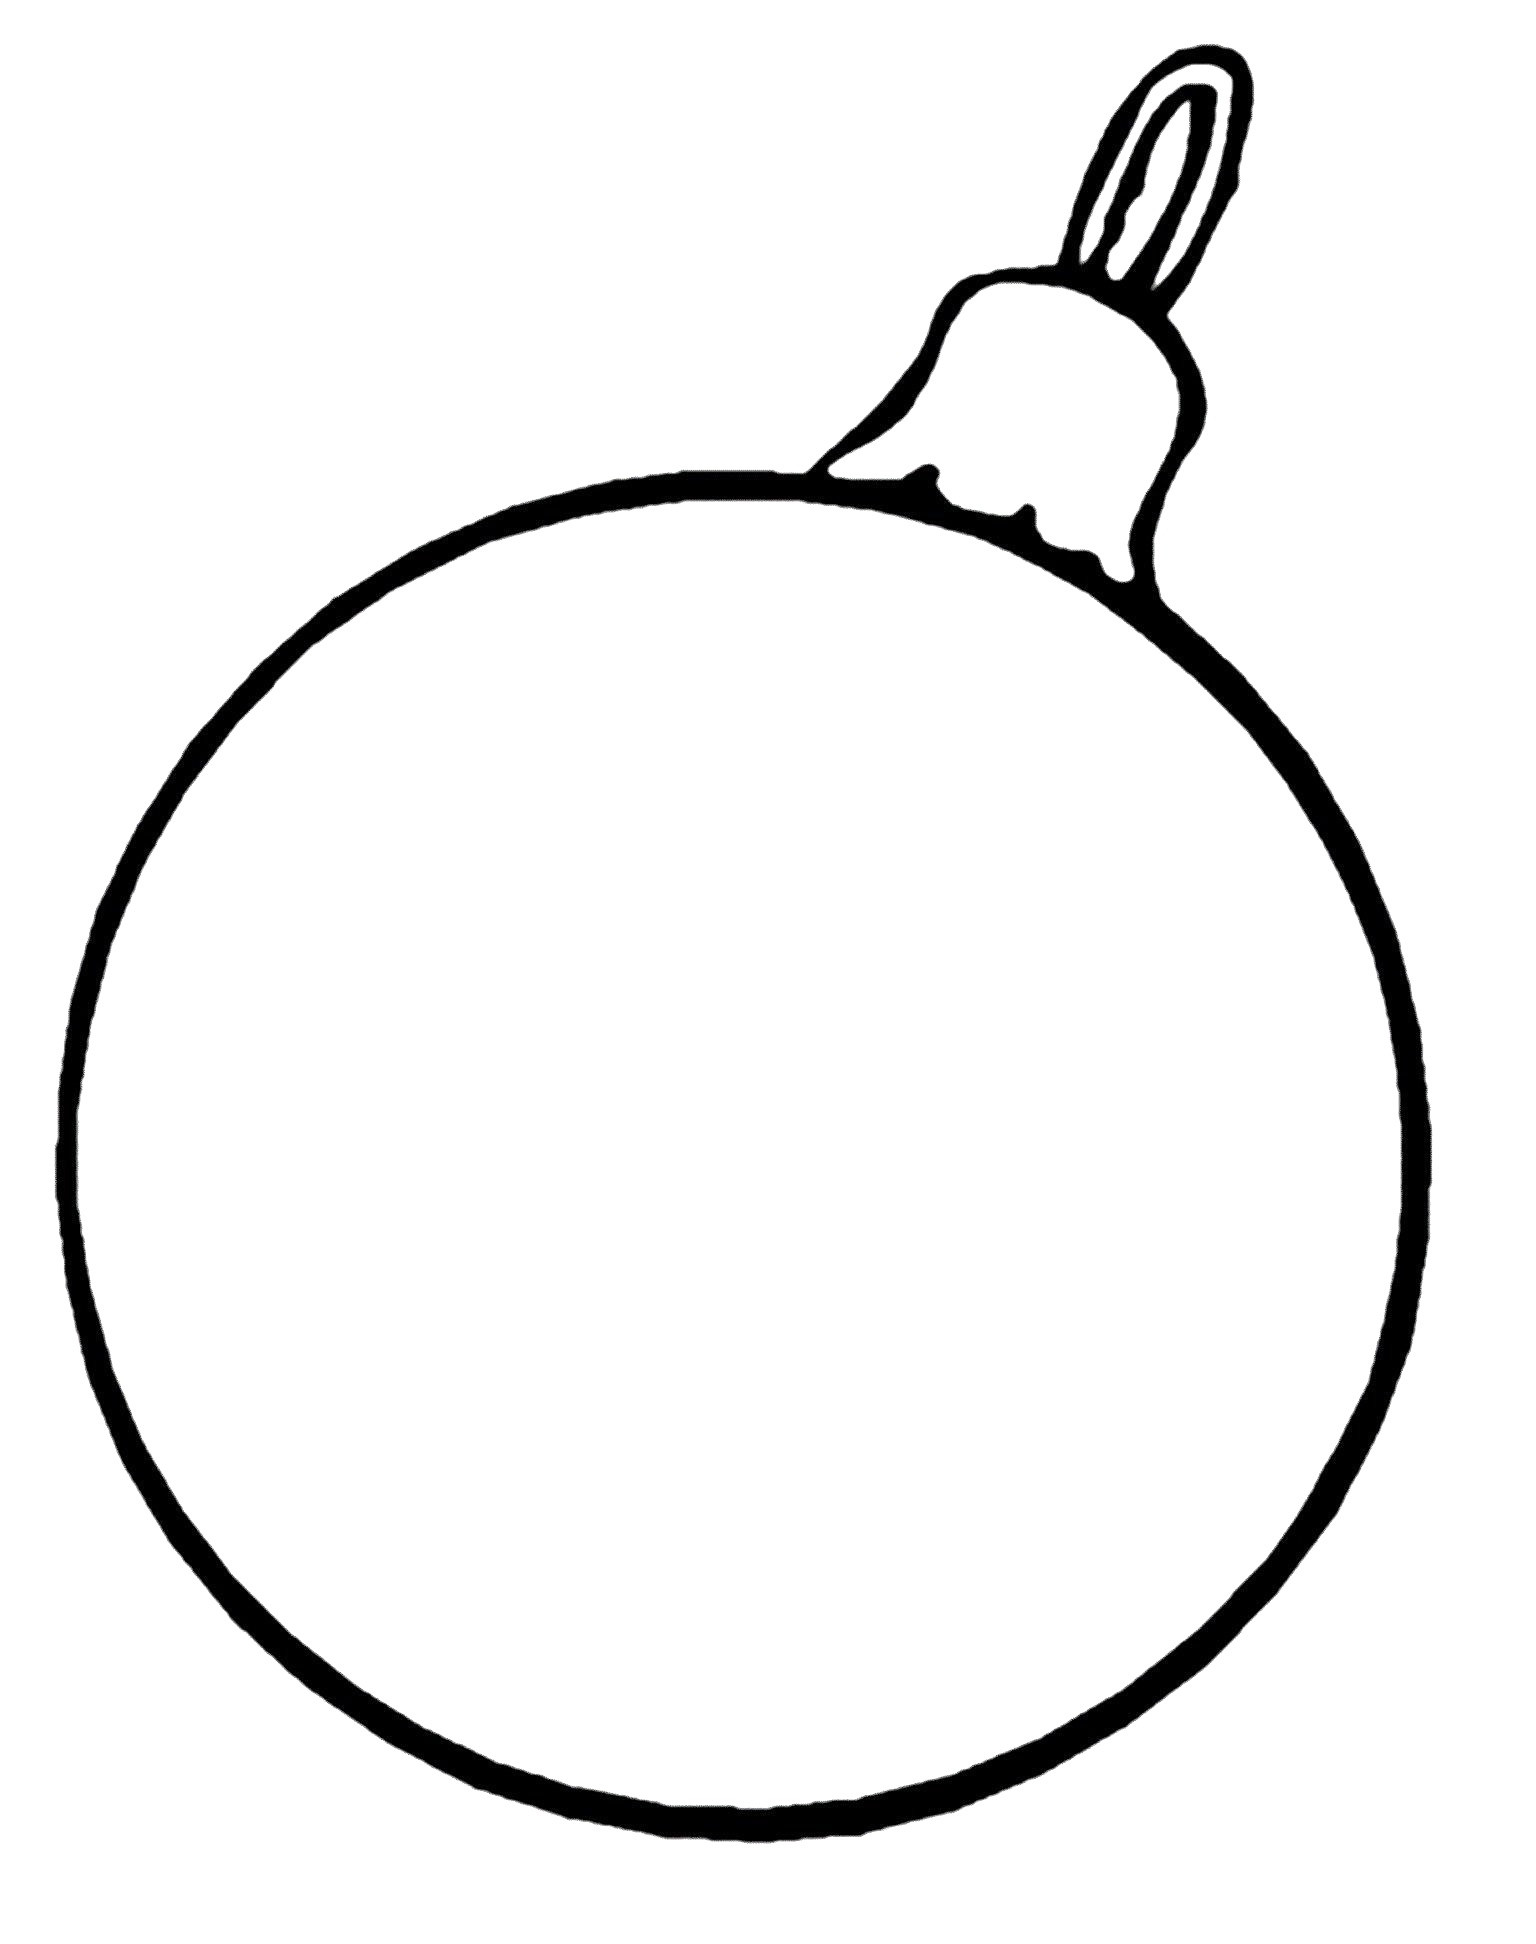 1536x1944 Christmas Ornament Coloring Page Free Printable Pages Inside